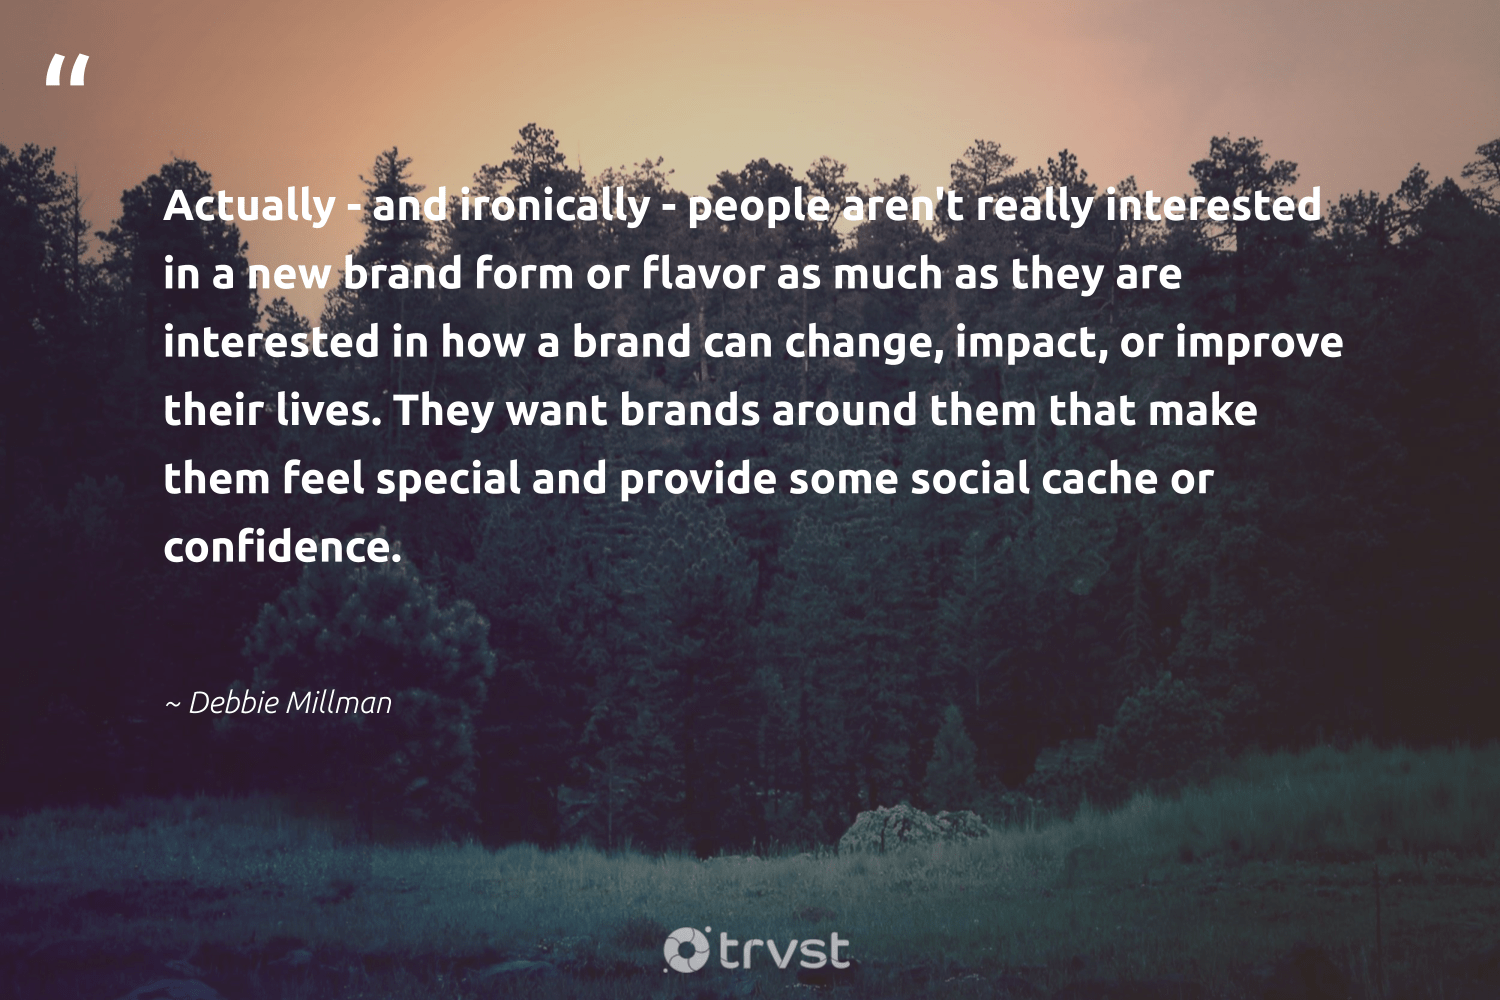 """""""Actually - and ironically - people aren't really interested in a new brand form or flavor as much as they are interested in how a brand can change, impact, or improve their lives. They want brands around them that make them feel special and provide some social cache or confidence.""""  - Debbie Millman #trvst #quotes #impact #makeadifference #dosomething #socialchange #thinkgreen #giveback #changetheworld #dogood #ecoconscious #weareallone"""